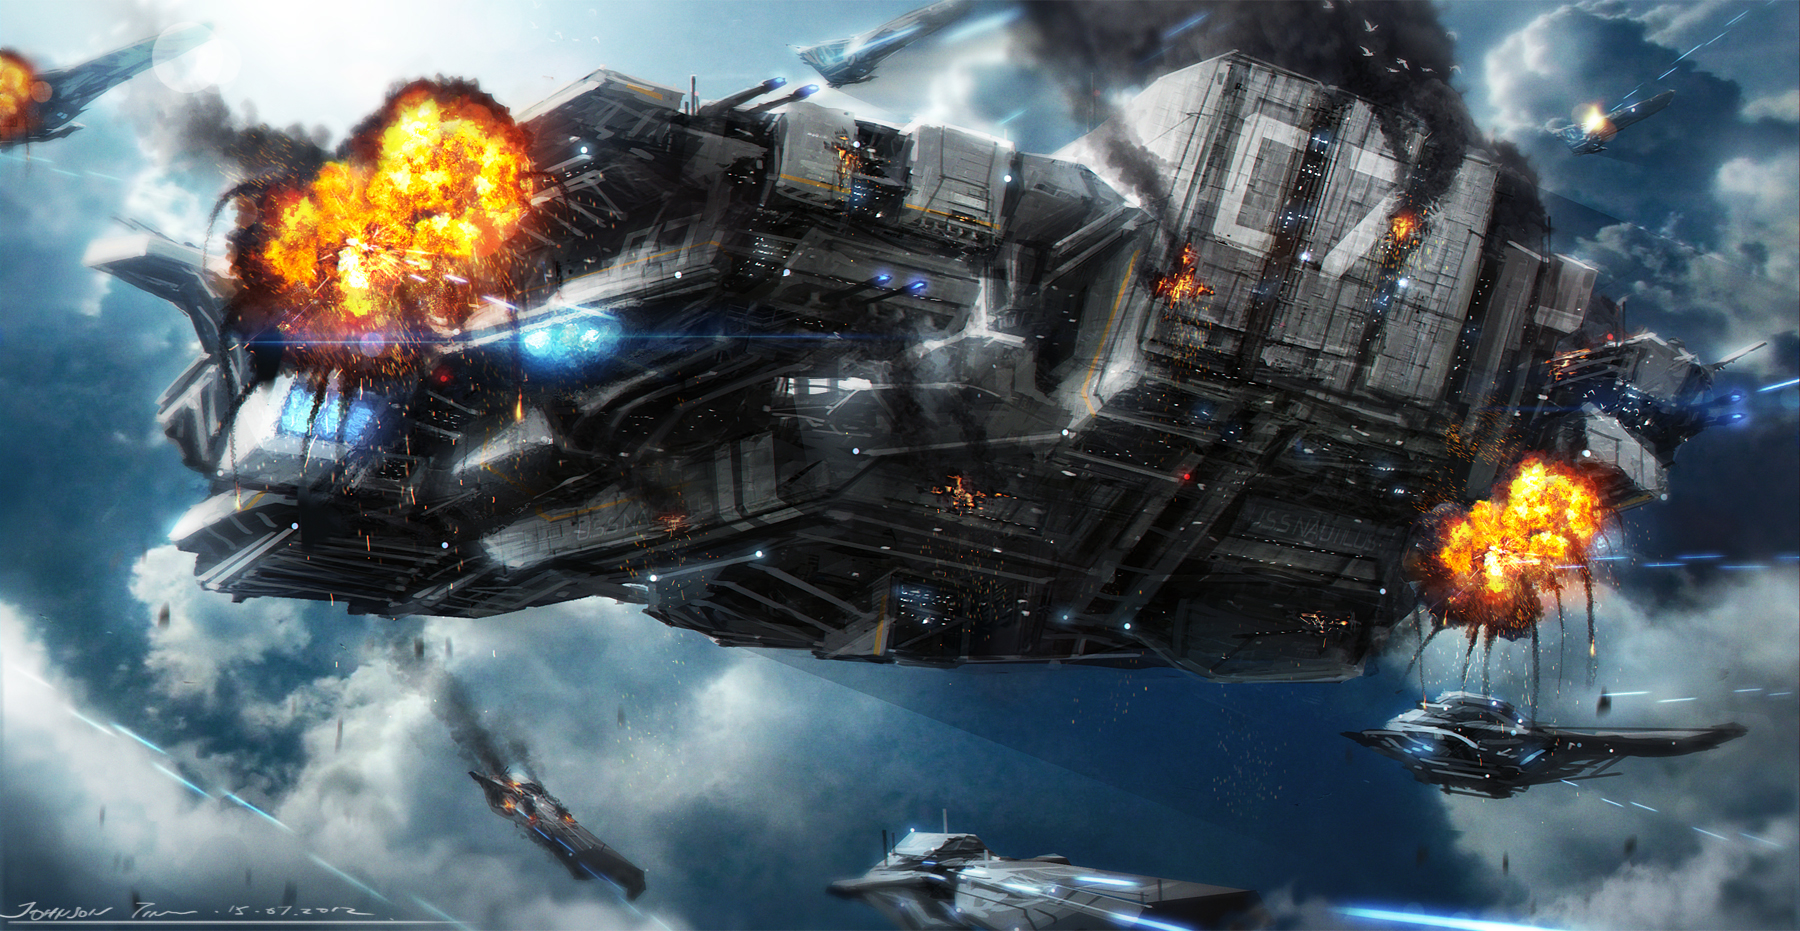 The battle of U.S.S Nautilus by johnsonting